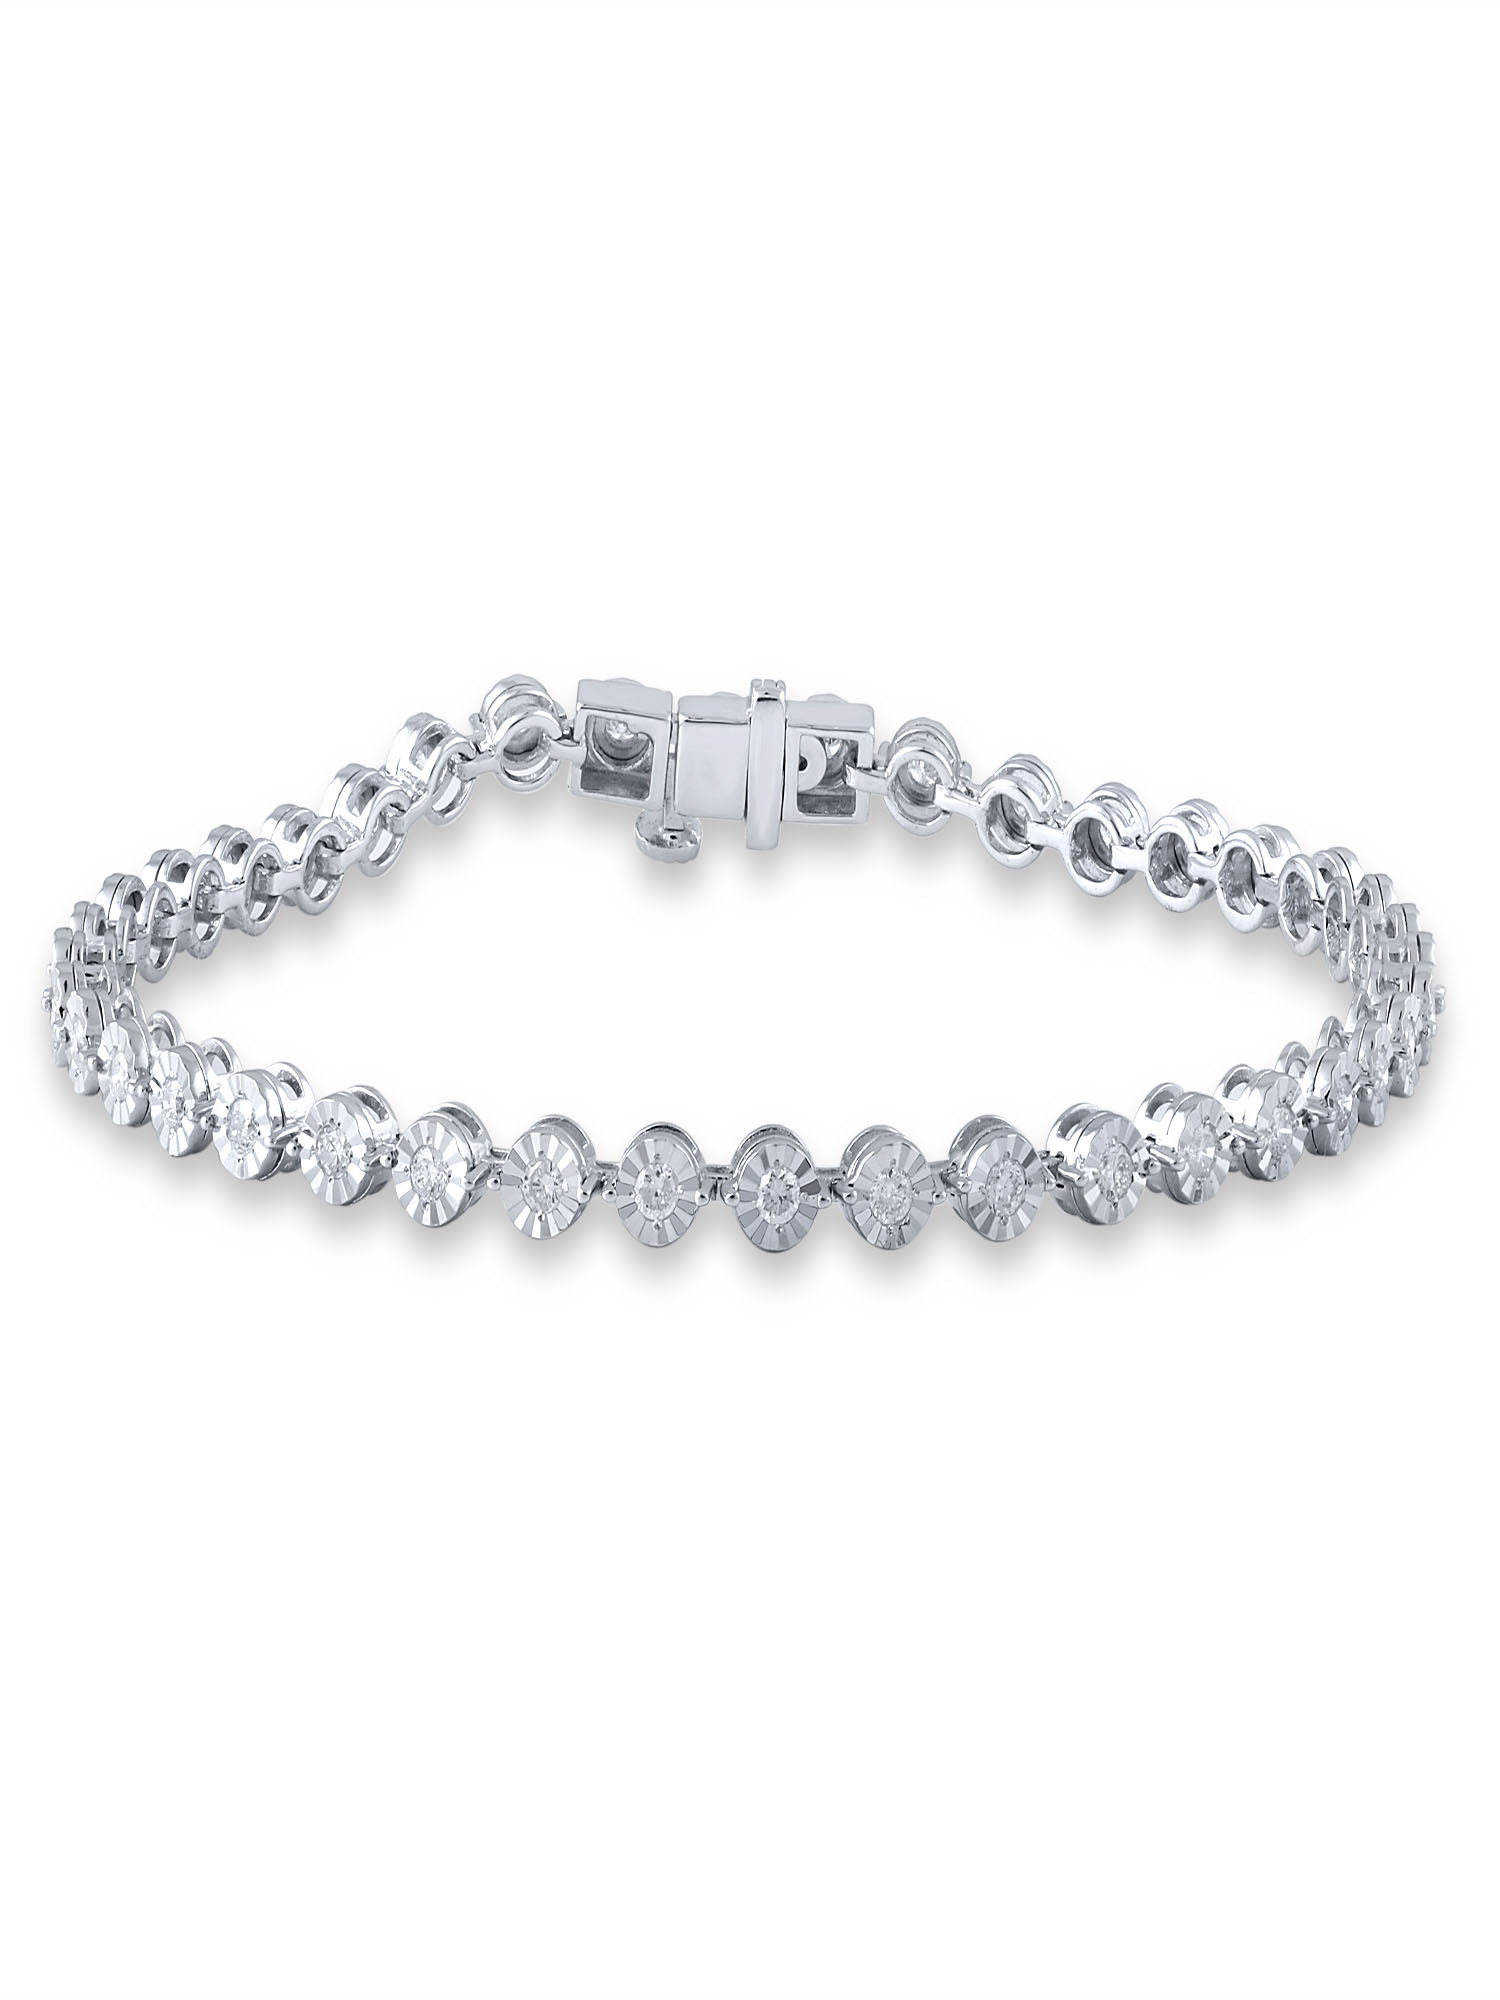 1 cttw Diamond Bracelet, 14kt White Gold